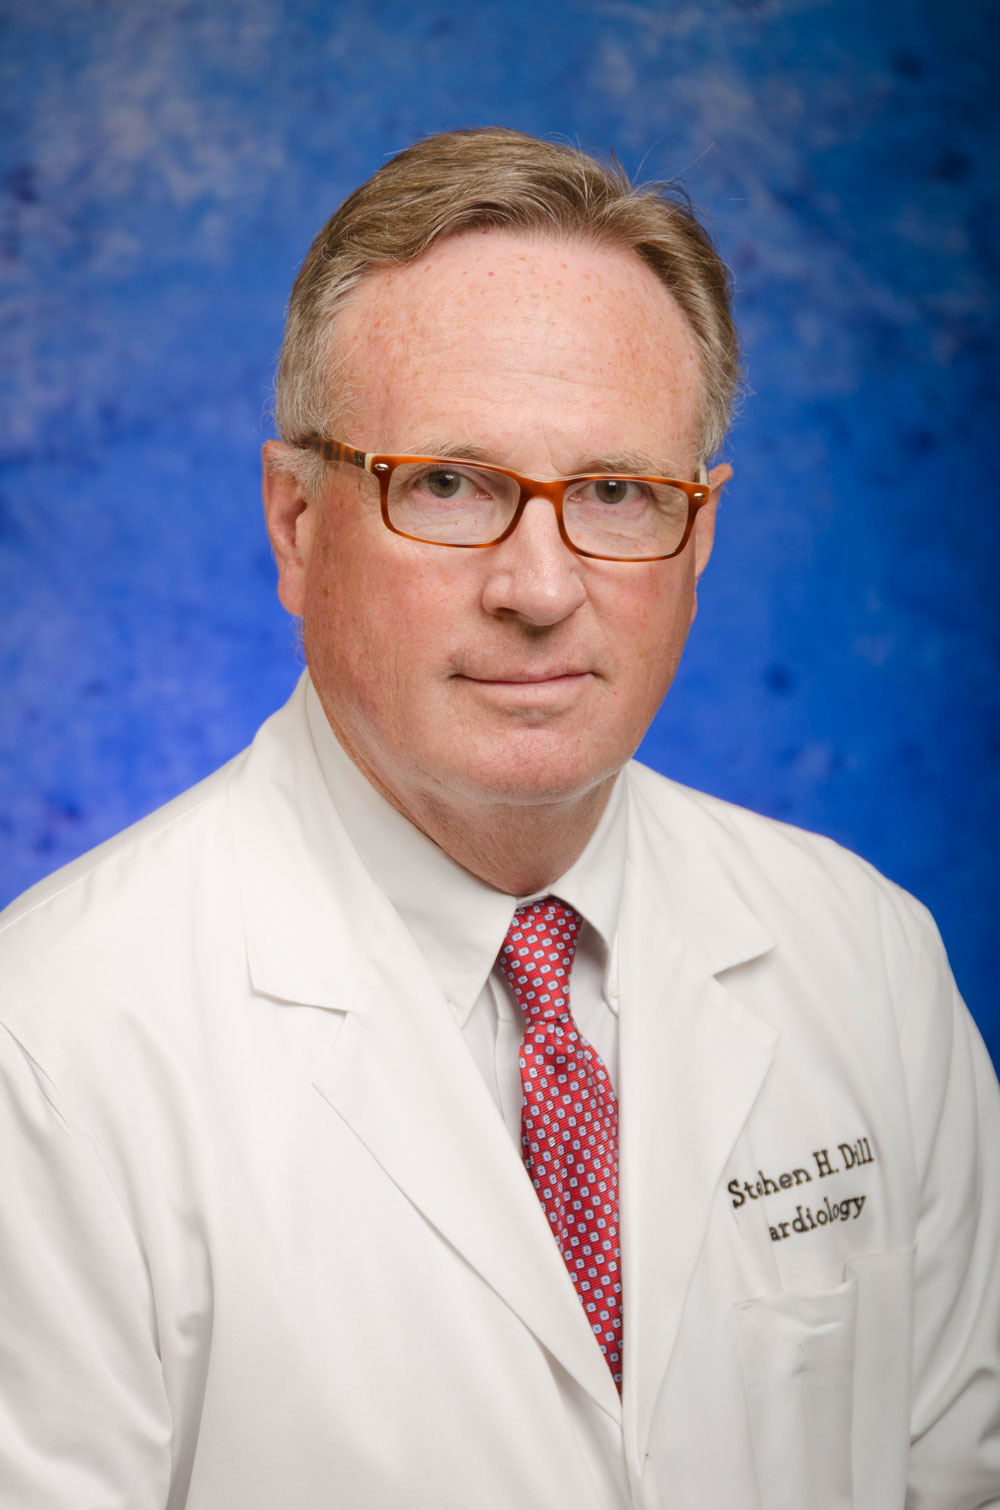 Stephen Dill, MD